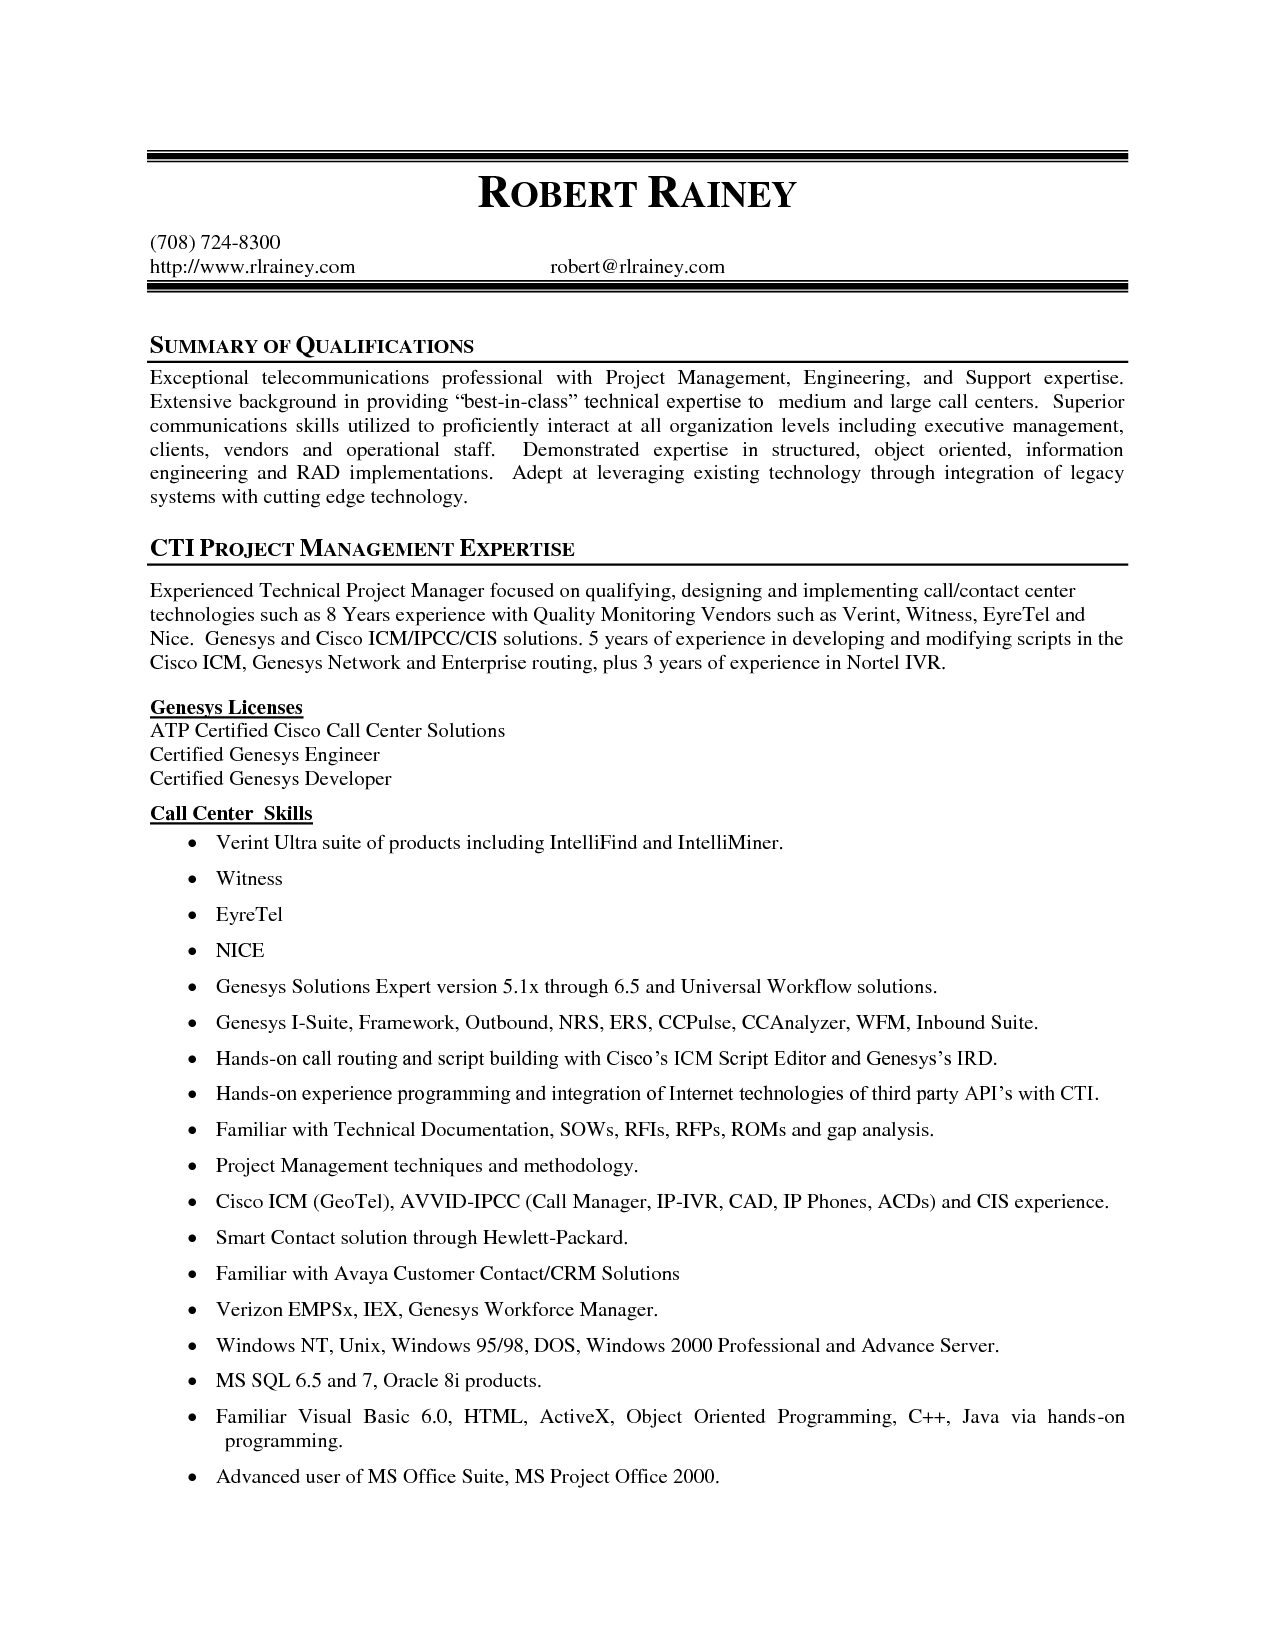 project management expertise resume summary of